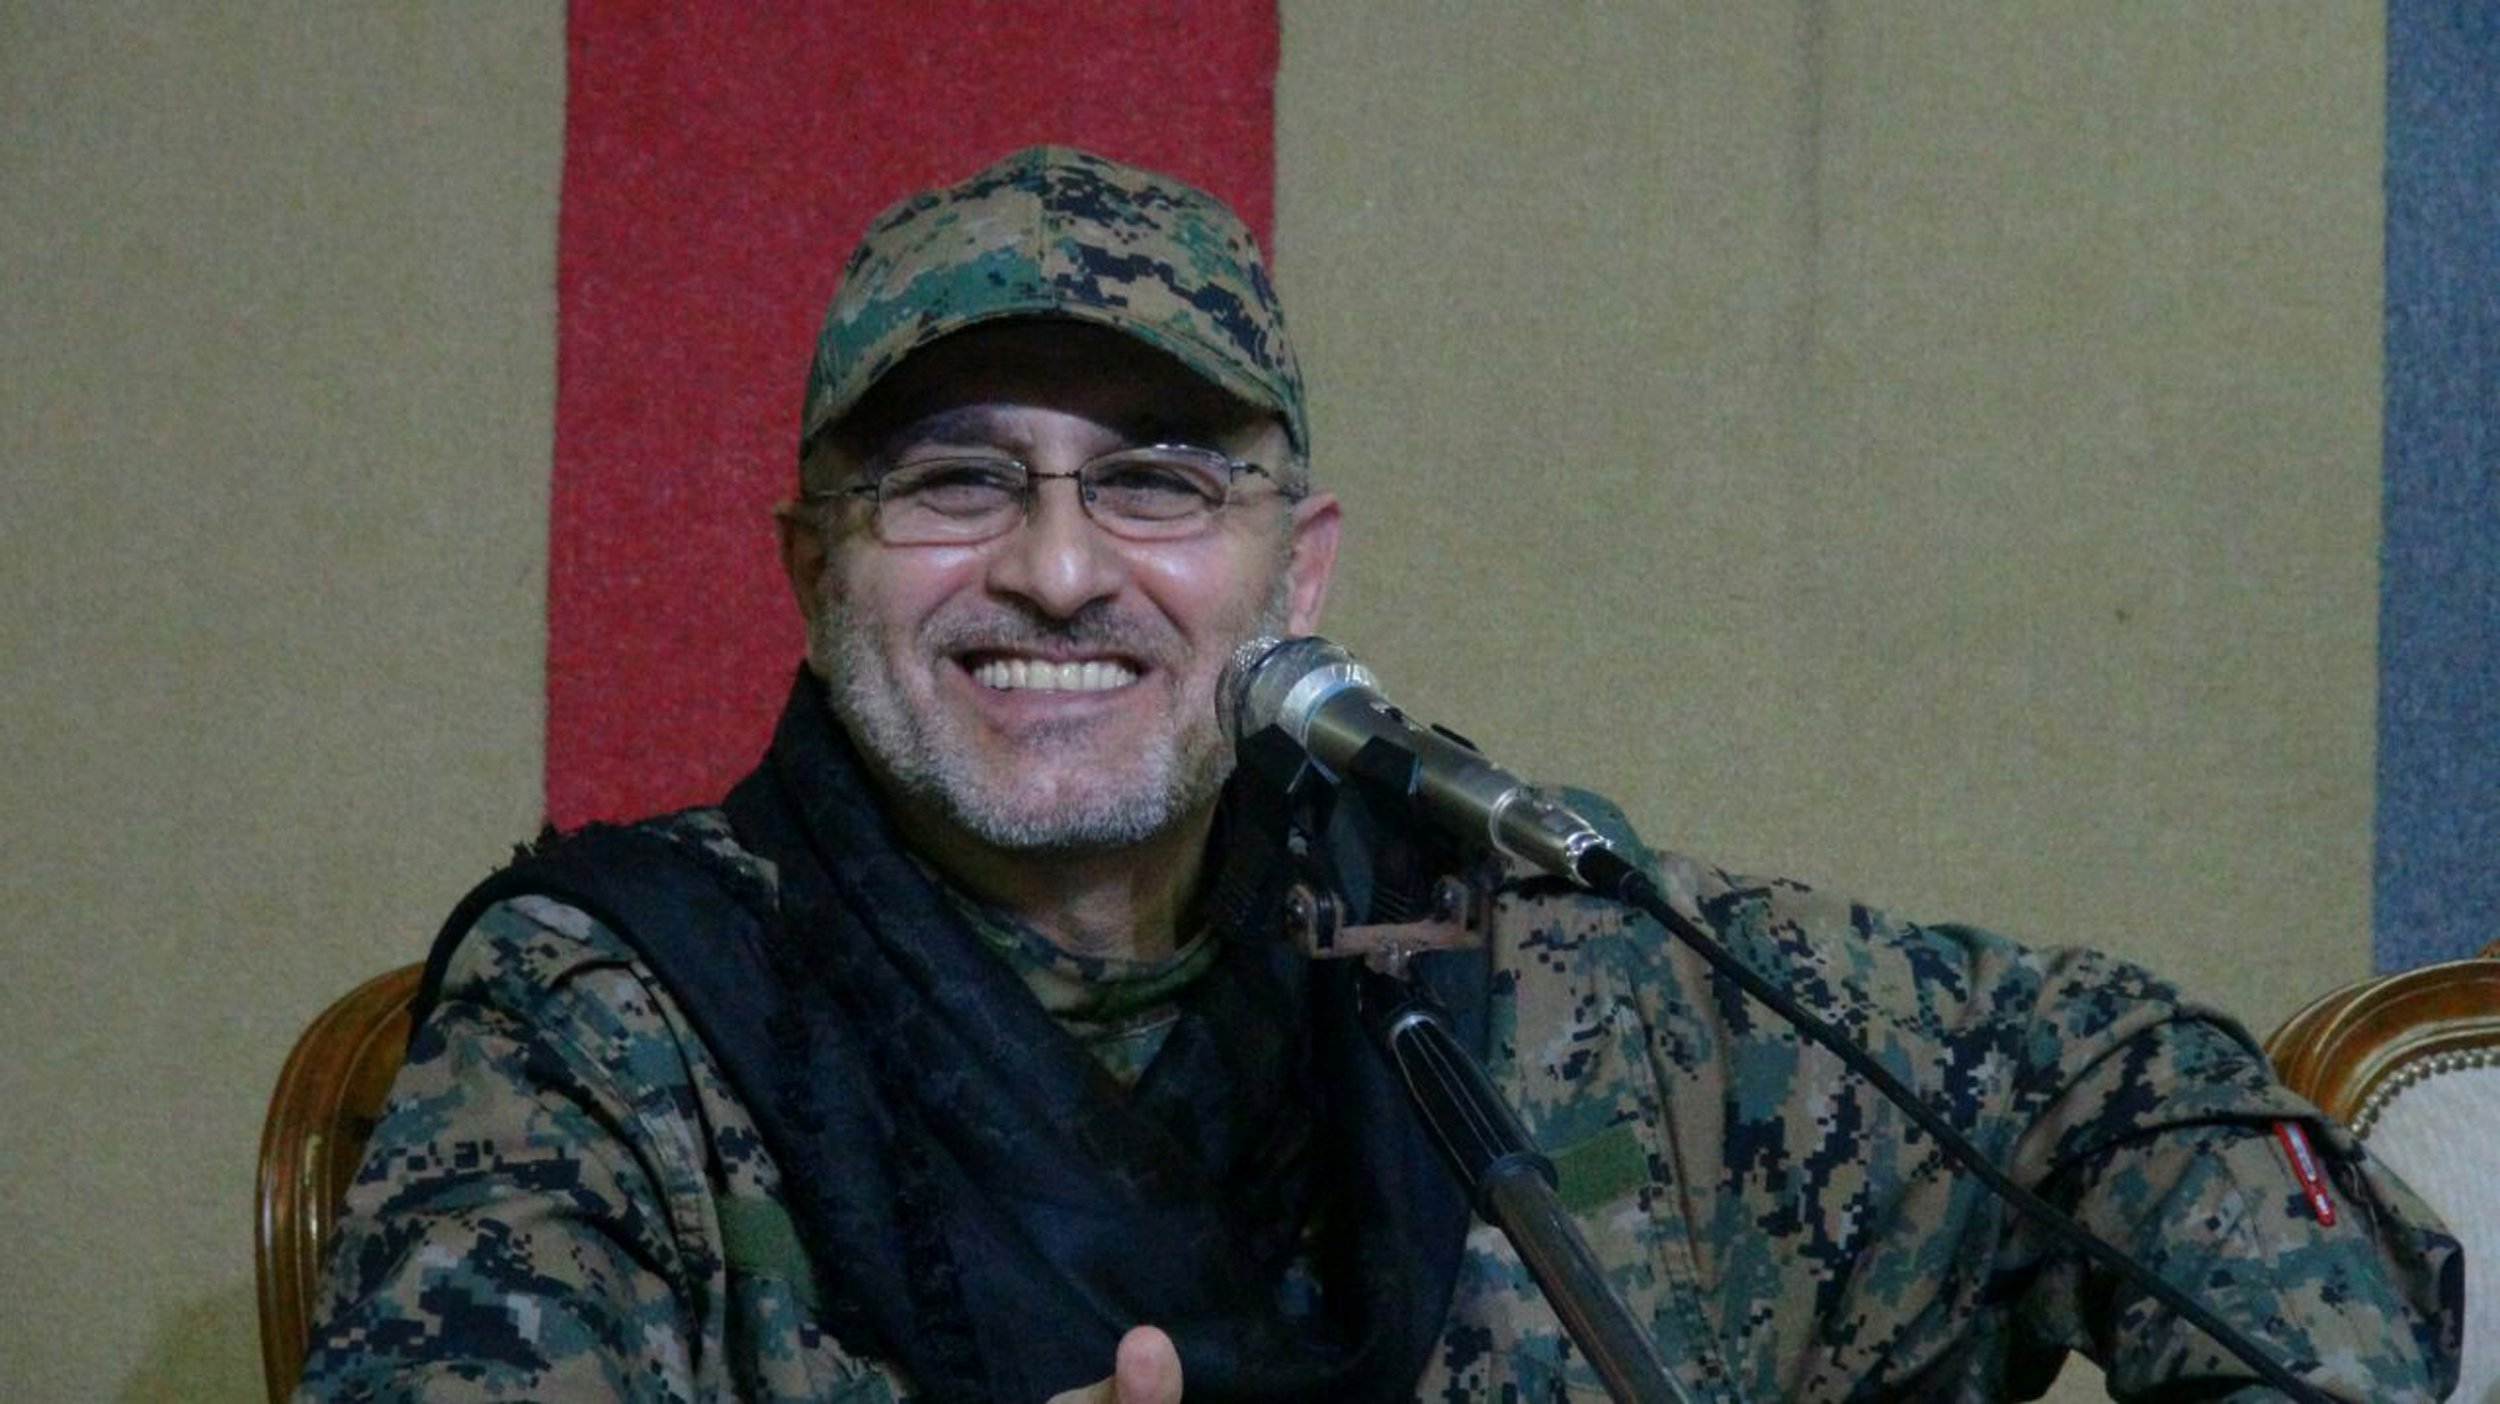 Hezbollah military commander Mustafa Badreddine